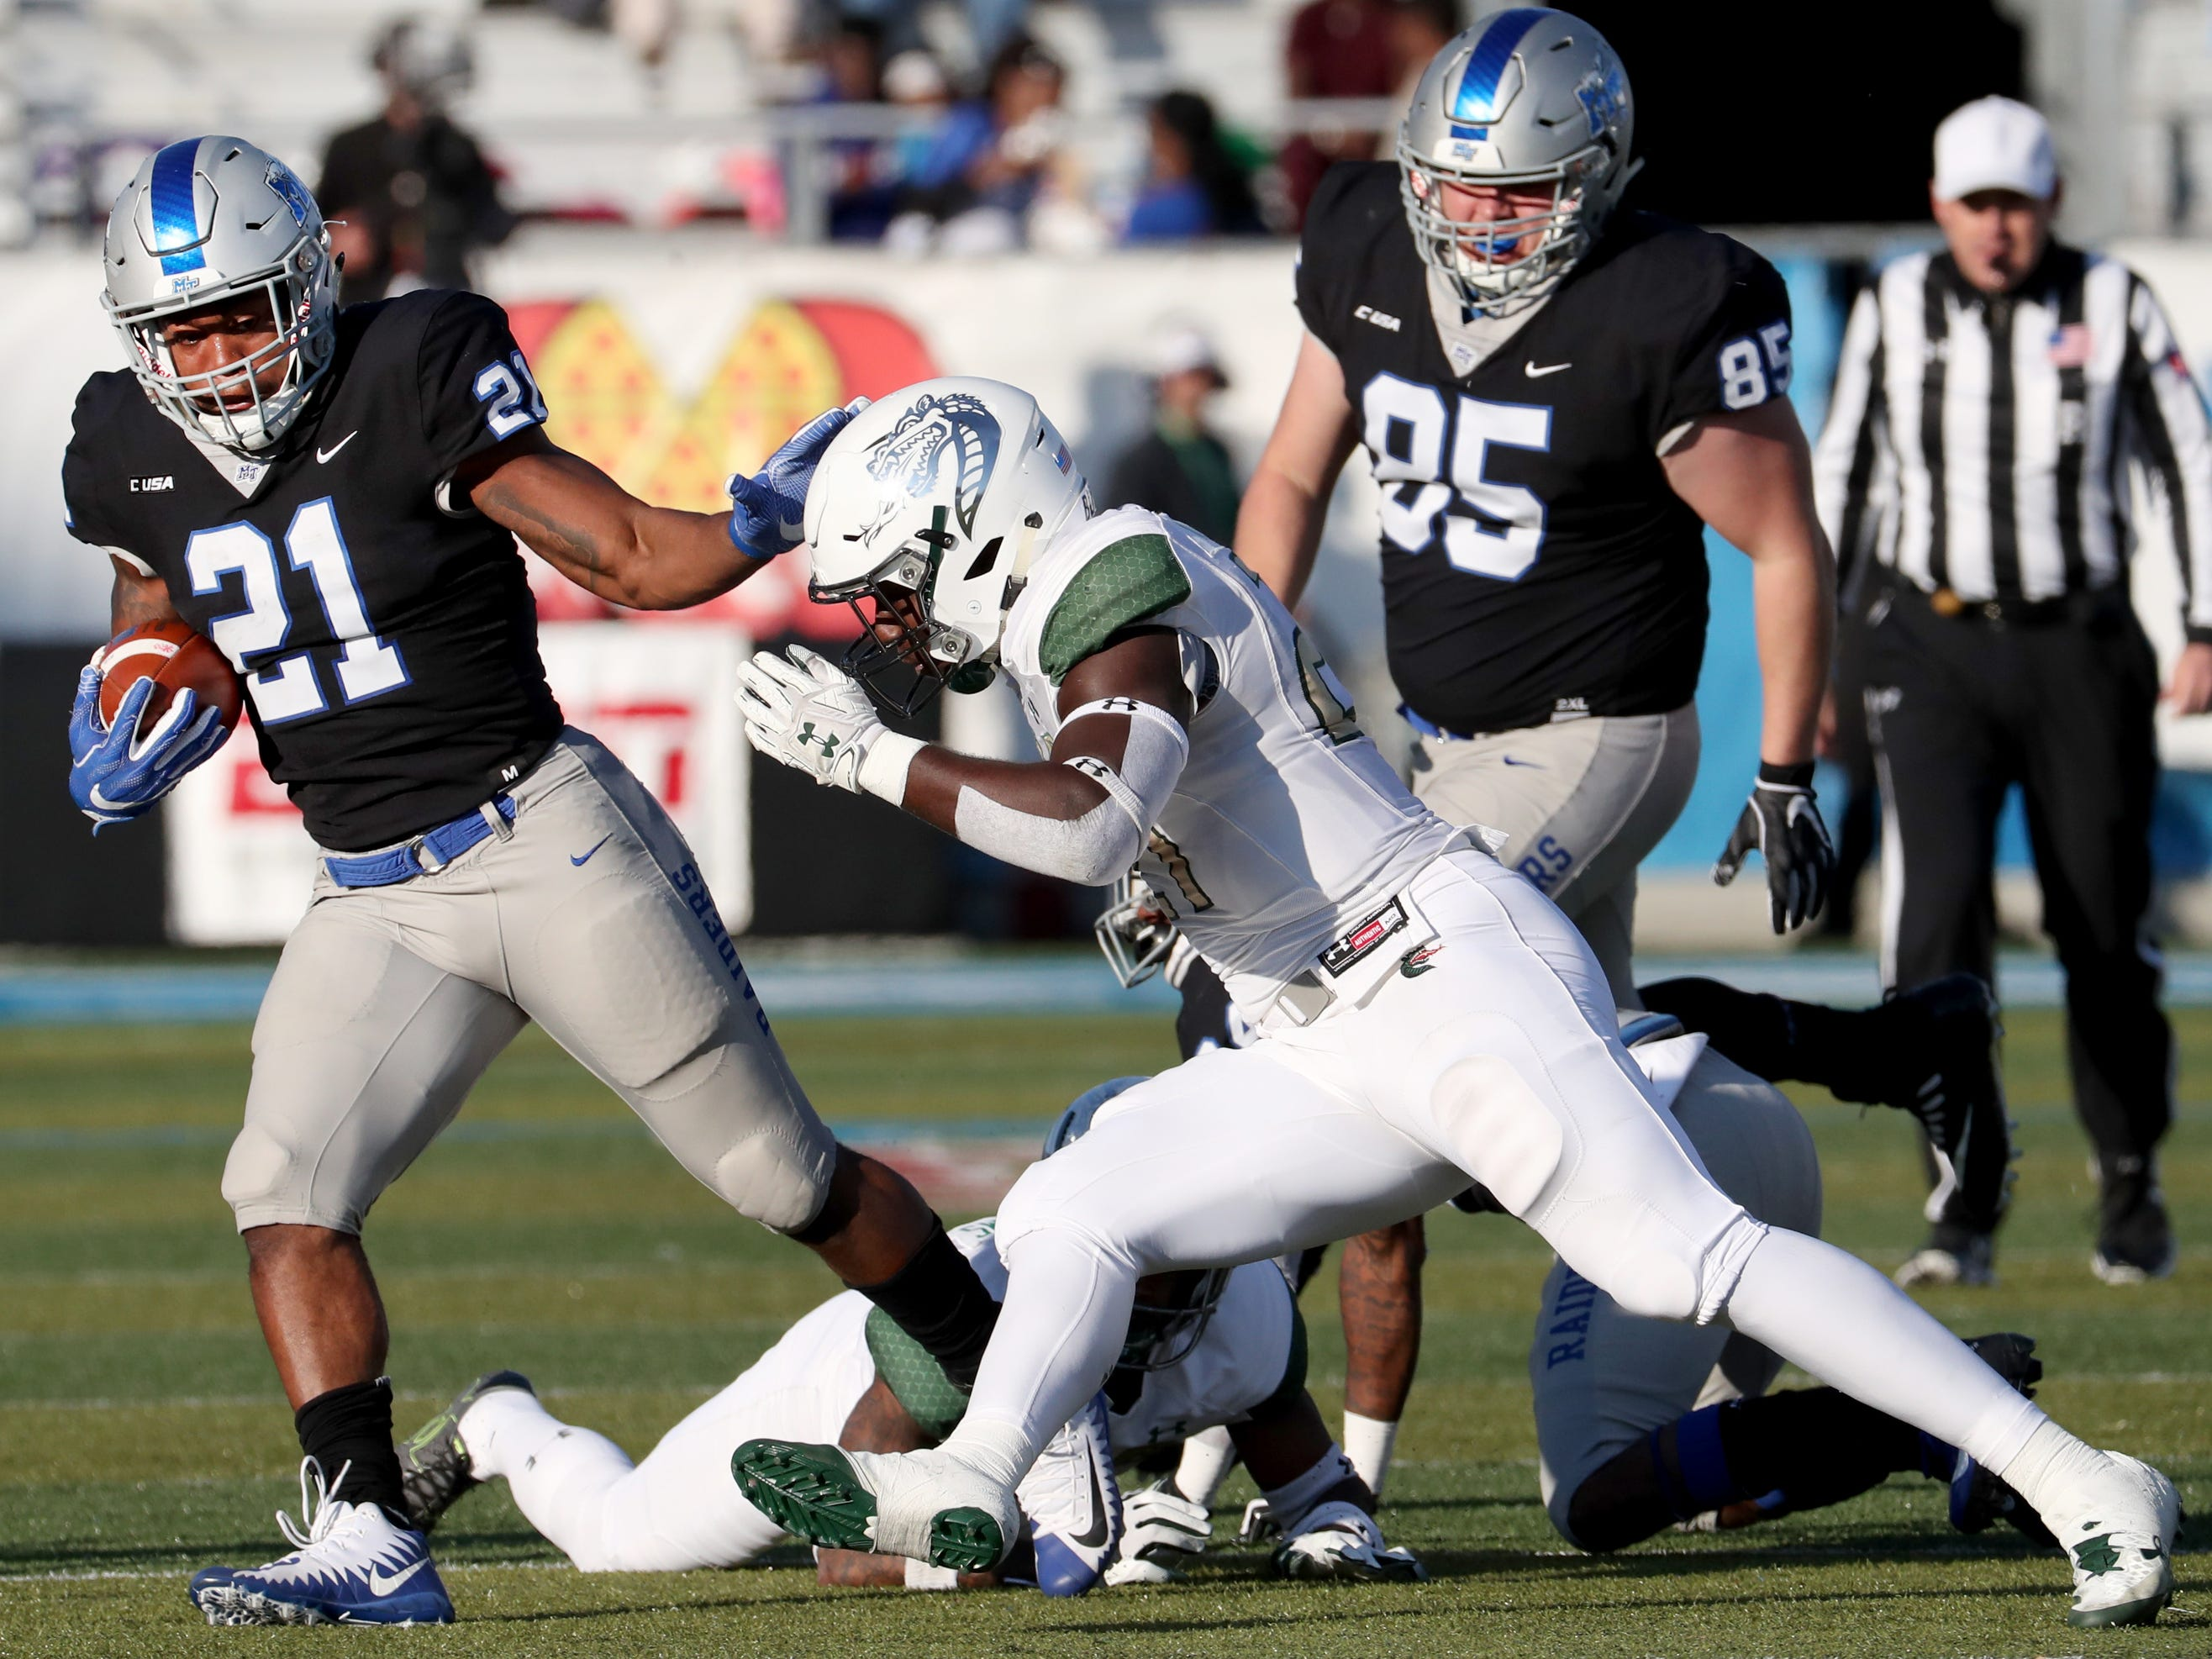 MTSU's Tavares Thomas (21) runs the ball as UAB's Chris Woolbright (27) moves in for a tackle during the game at MTSU on Saturday, Nov. 24, 2018.